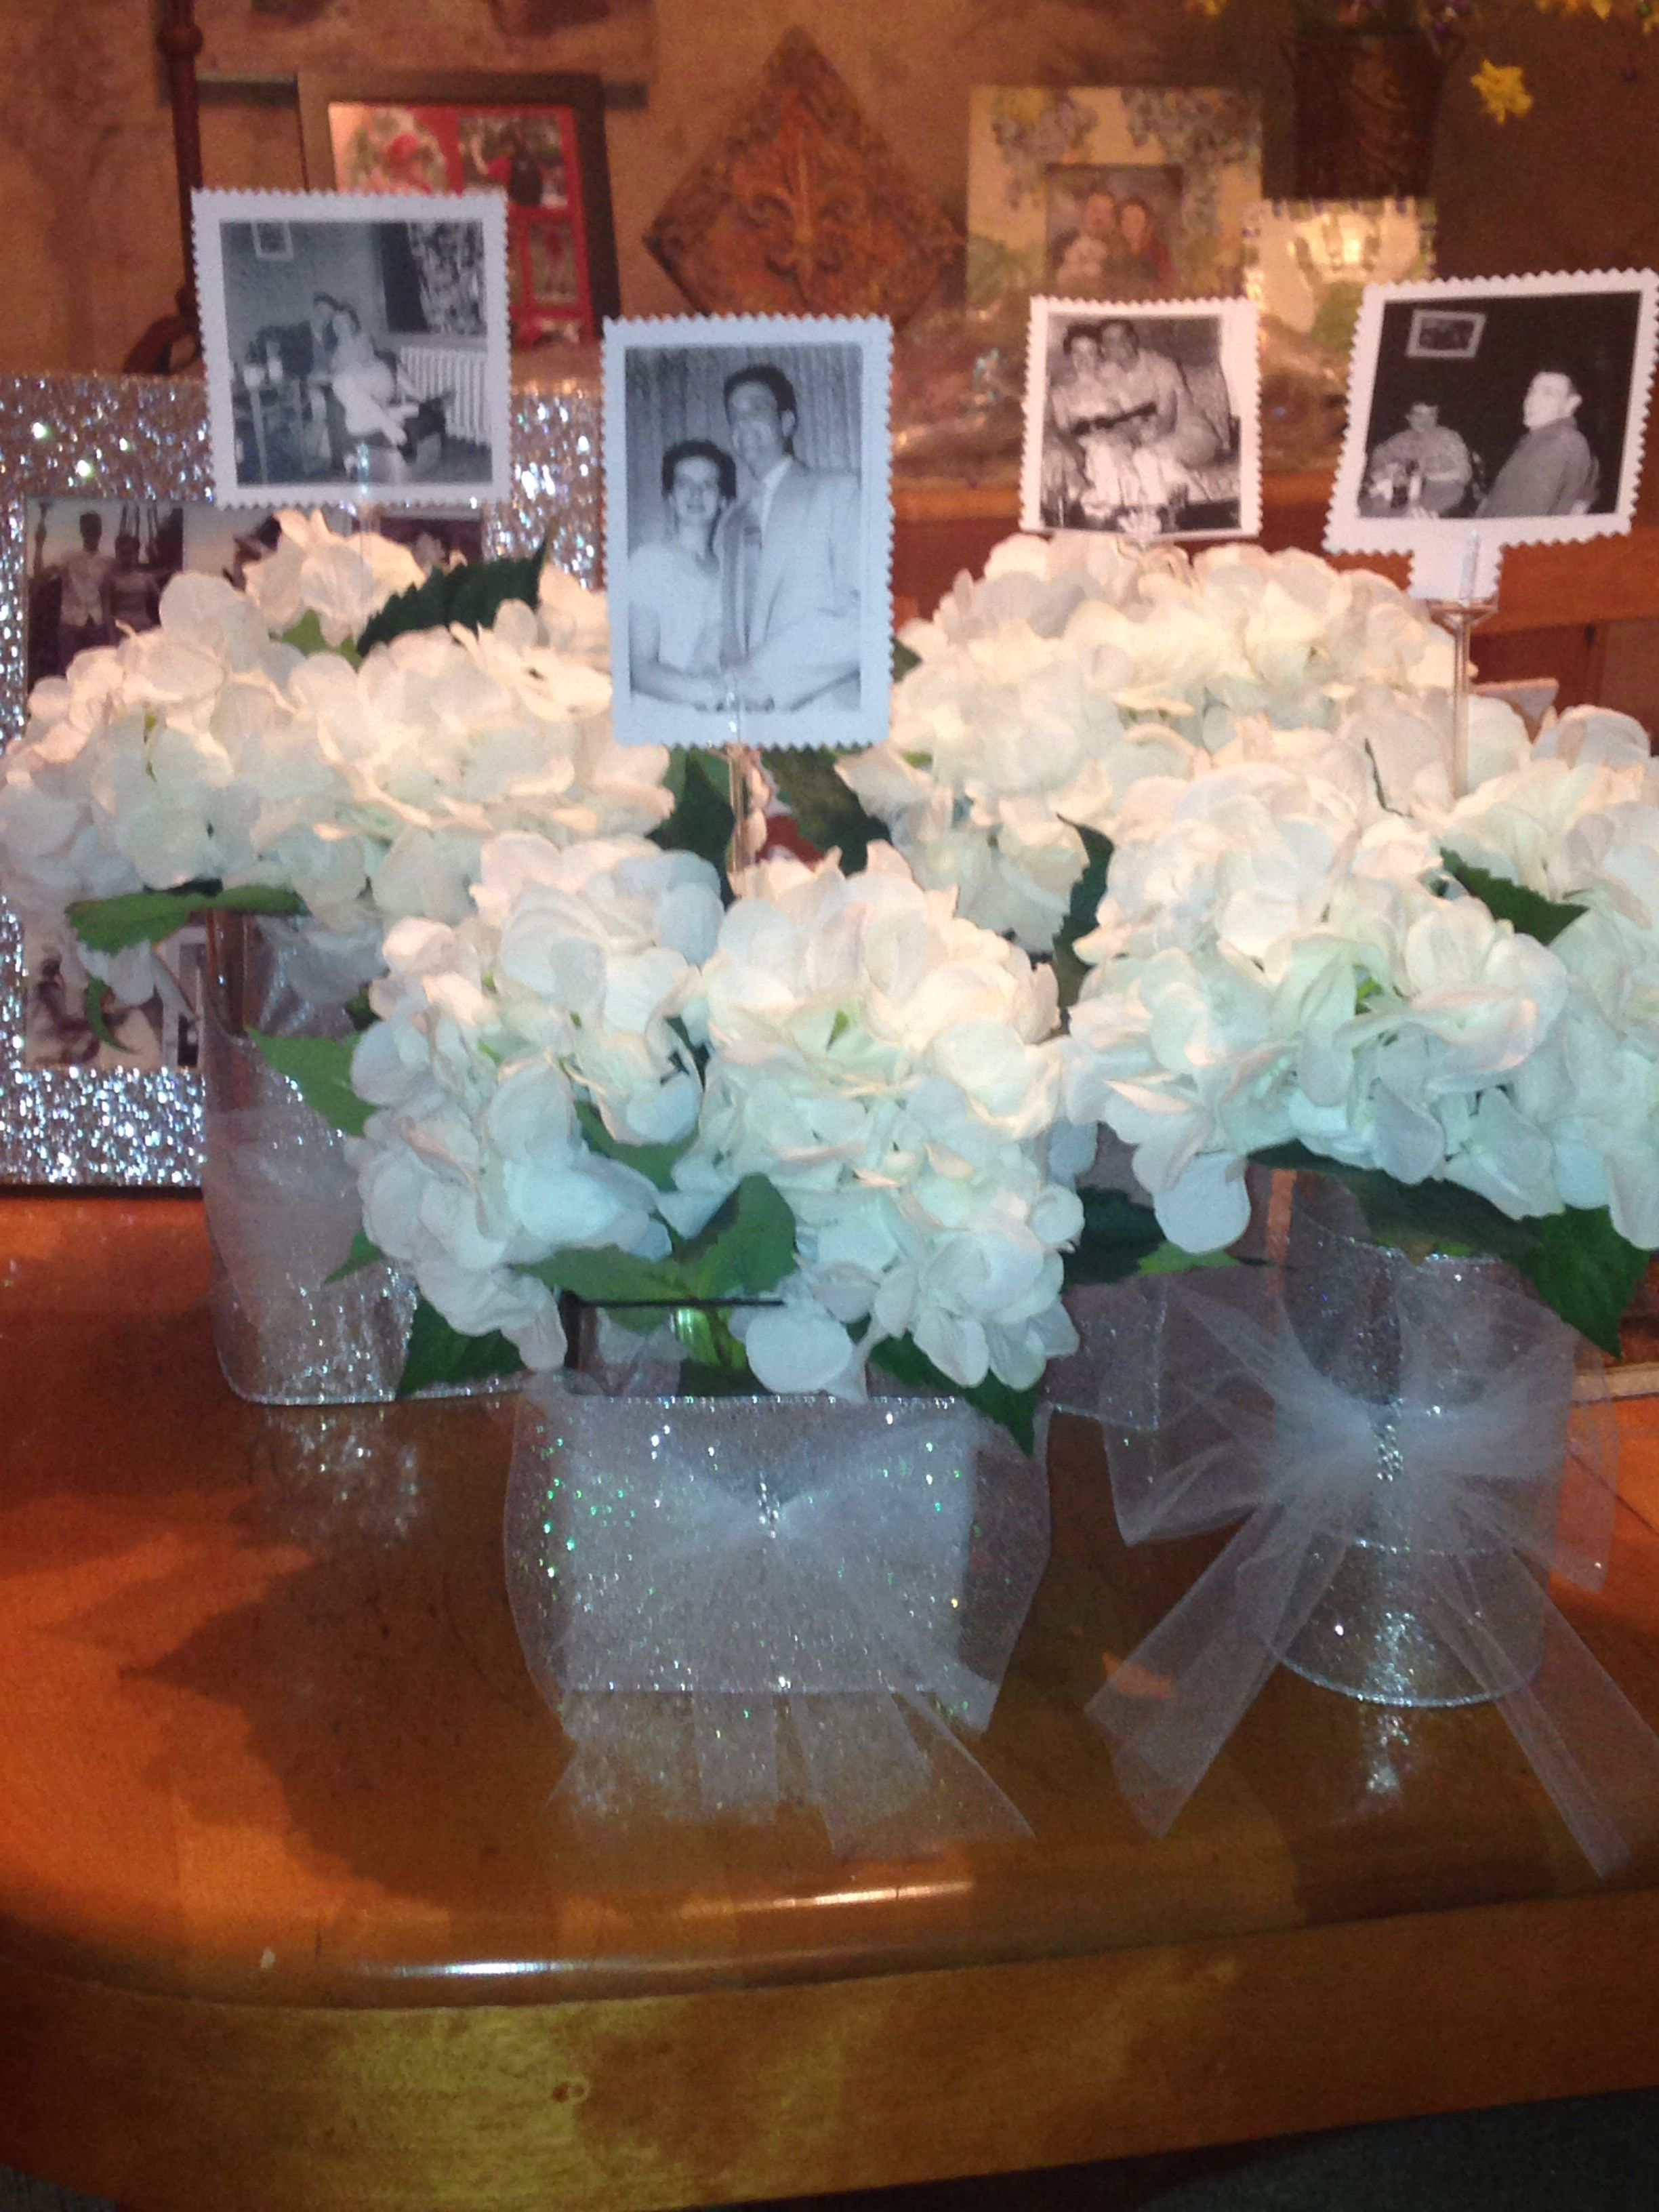 Anniversary Party Idea For Table Centerpiece Put A Picture Of The S Engagement Wedding Etc On Card Stick In Middle Flower